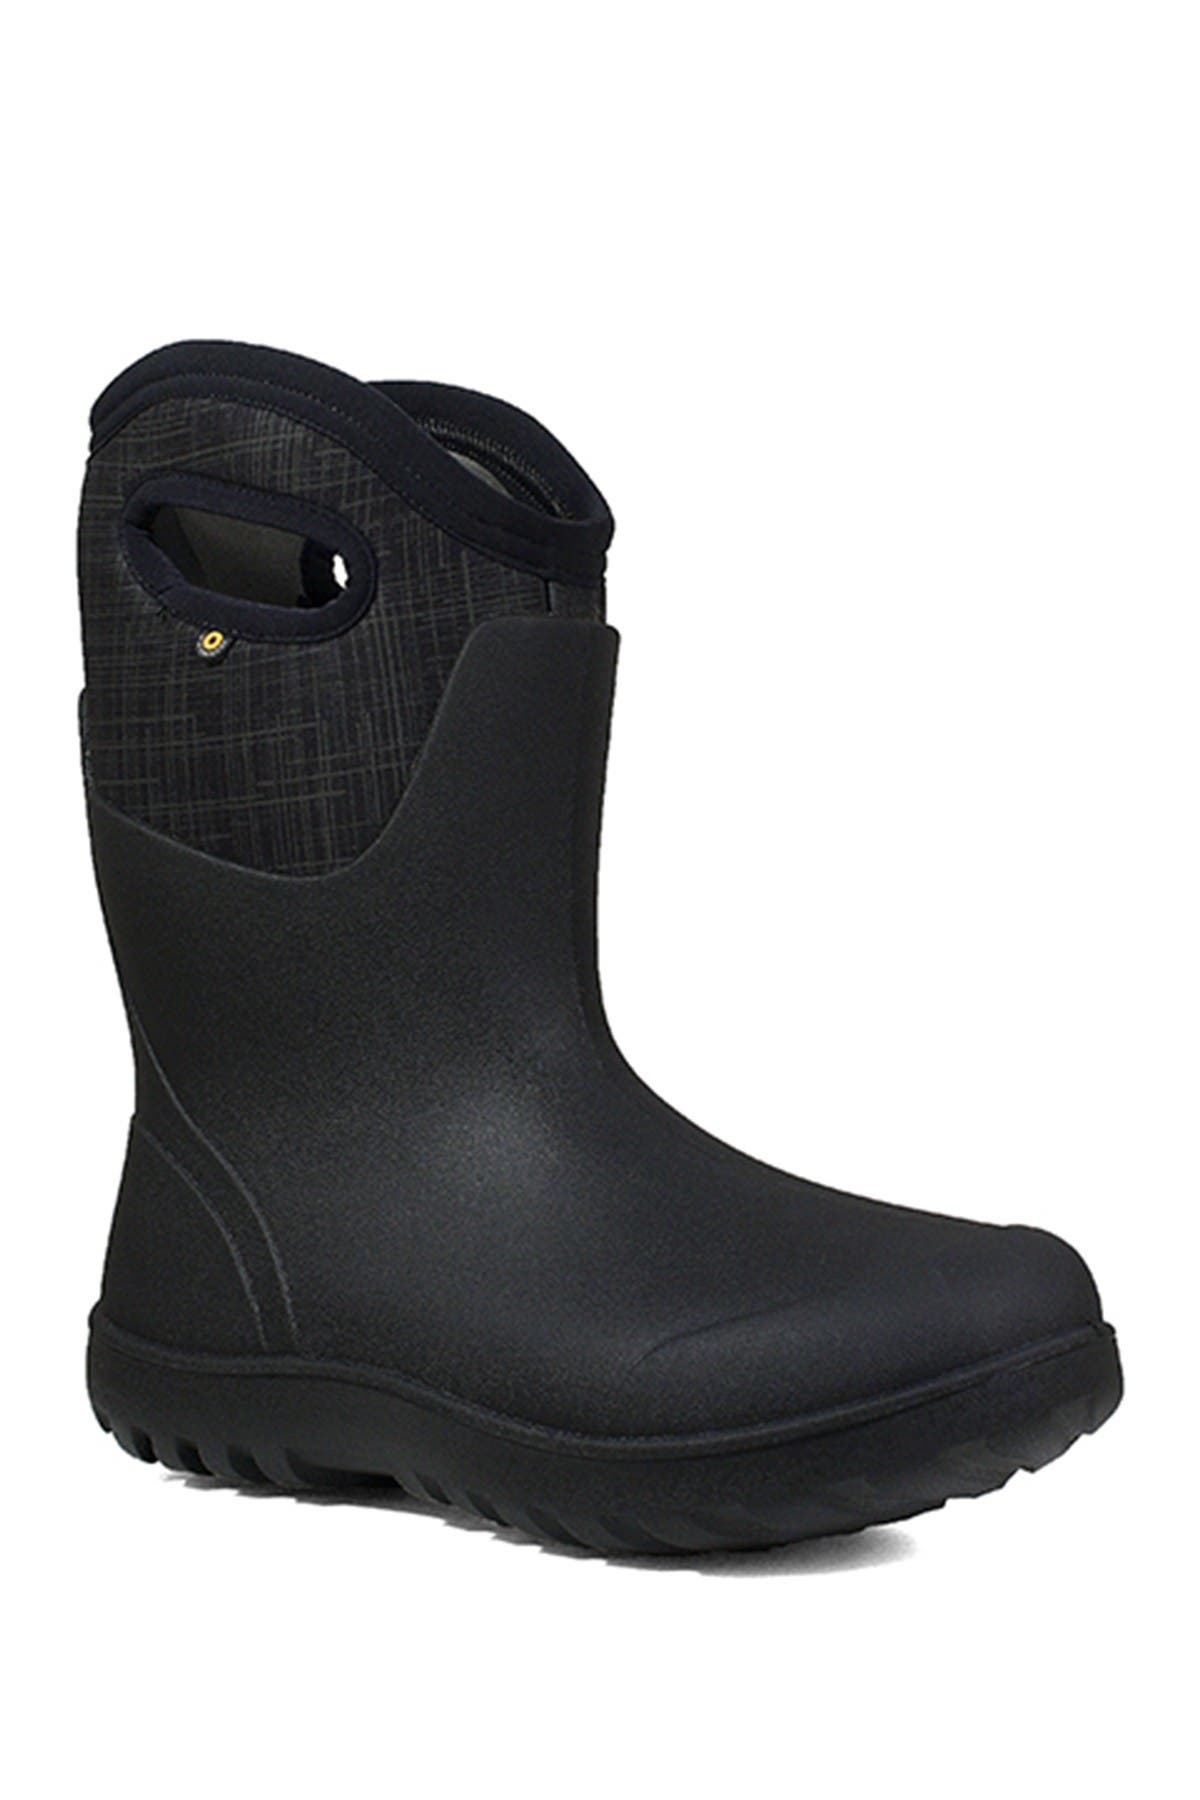 Image of Bogs Neo Classic Mid Waterproof Rainboot